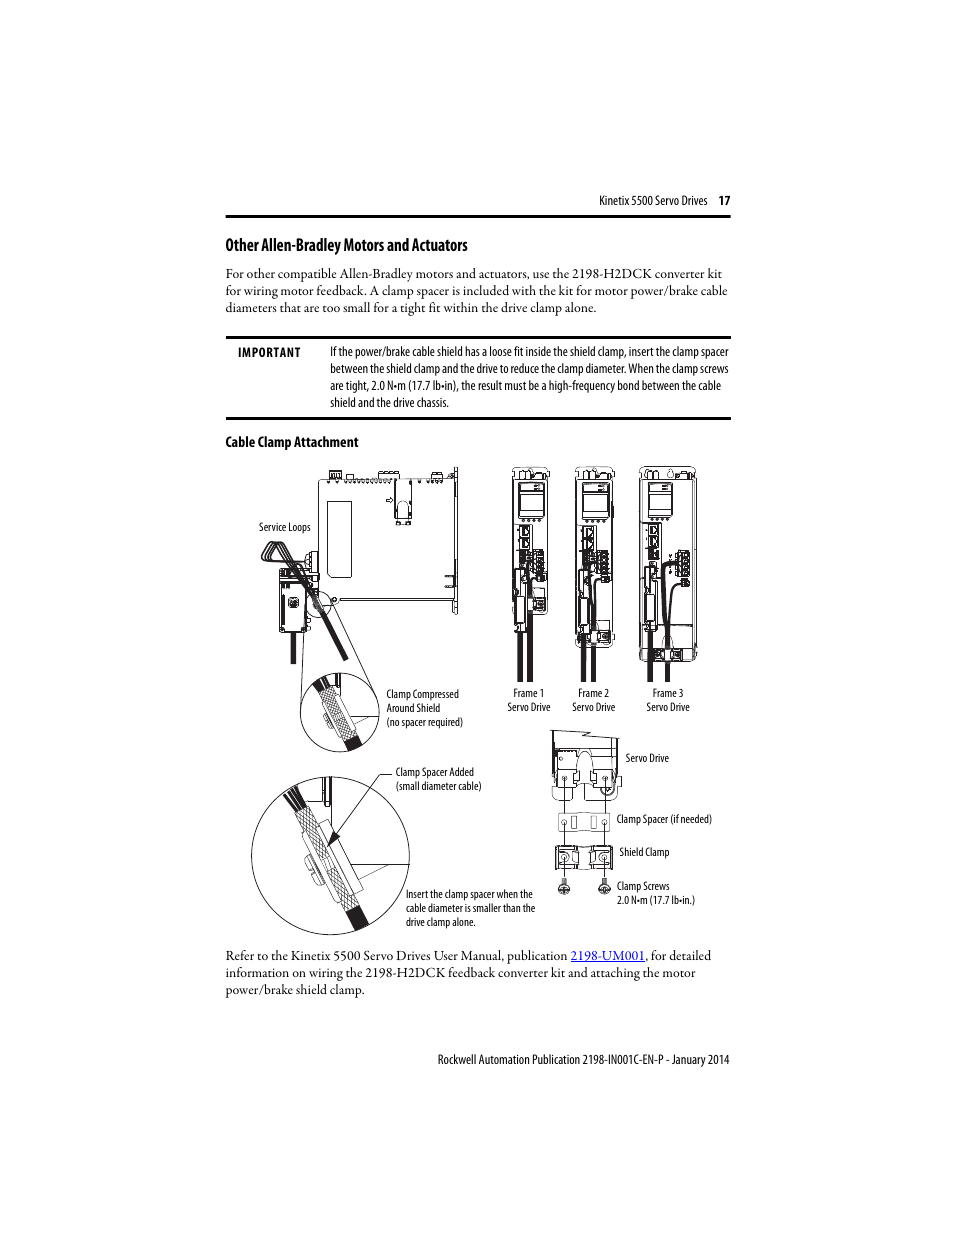 Other Allen Bradley Motors And Actuators Rockwell Automation 2198 Servo Drive Motor Wiring Diagram Hxxx Kinetix 5500 Drives Installation Instructions User Manual Page 17 20